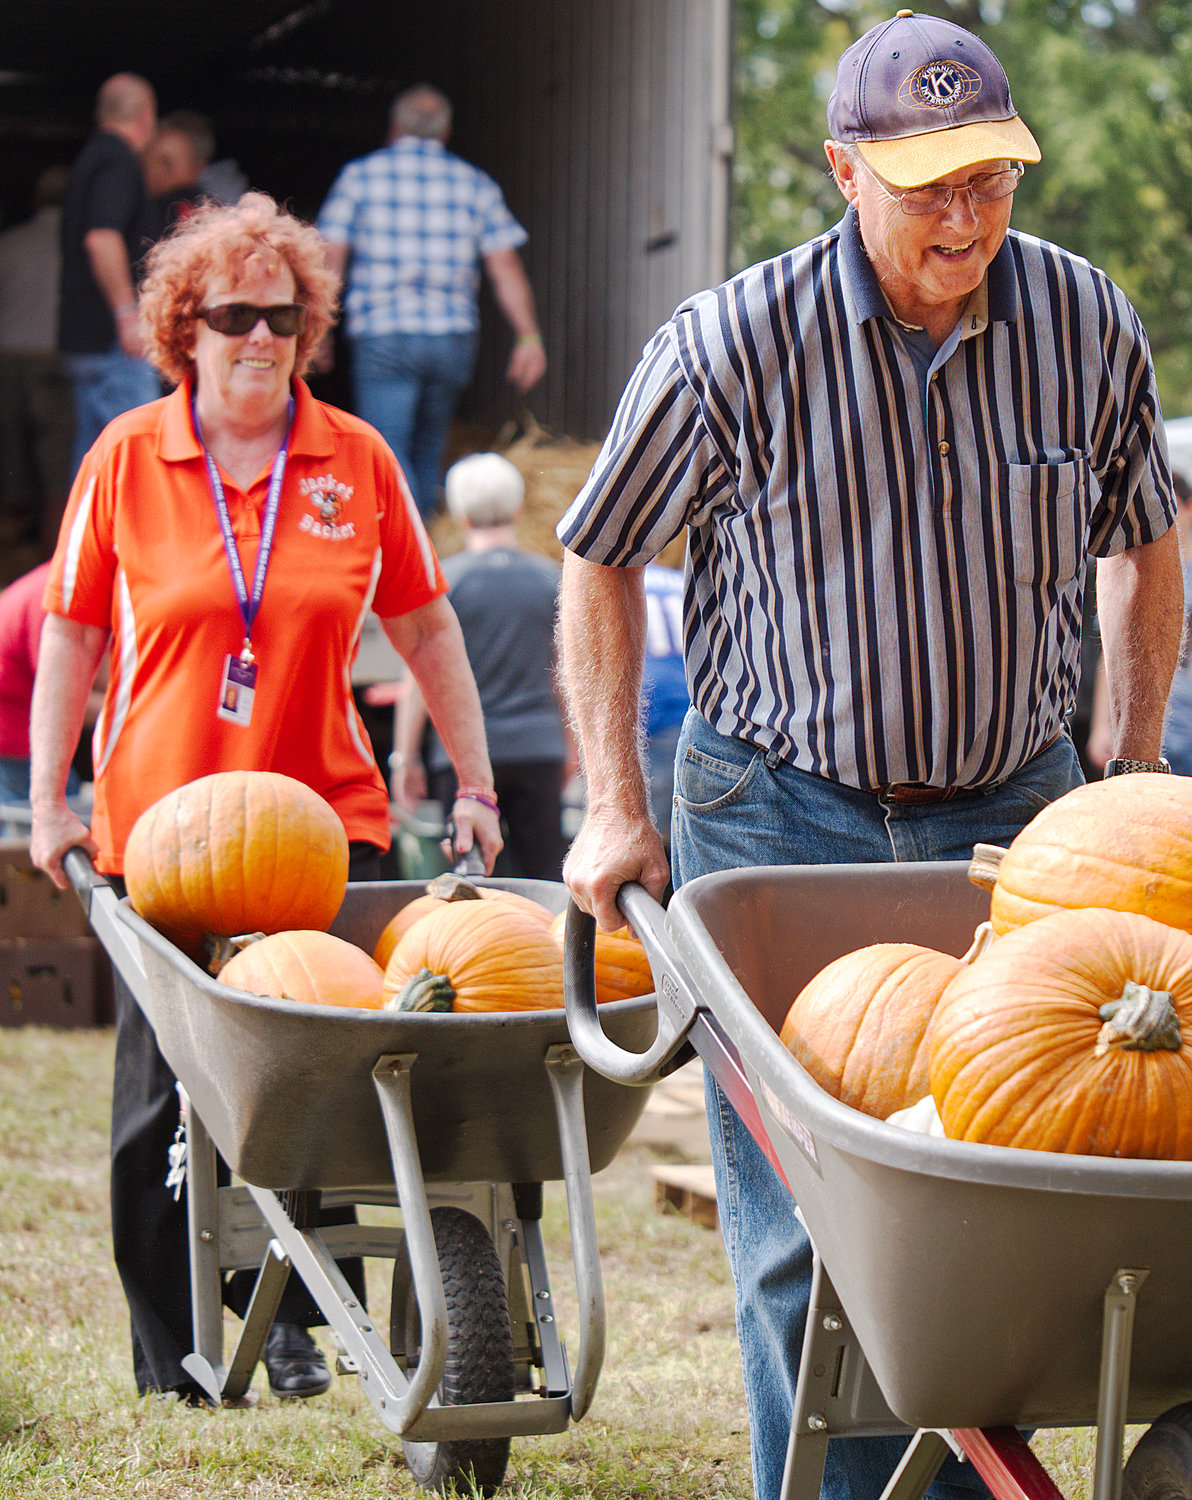 Sandy Bennett and Sam Curry wheel pumpkins from a truck at the First United Methodist Church in Mineola Monday in preparation for the church's annual pumpkin patch, which raises money for various children's ministries.